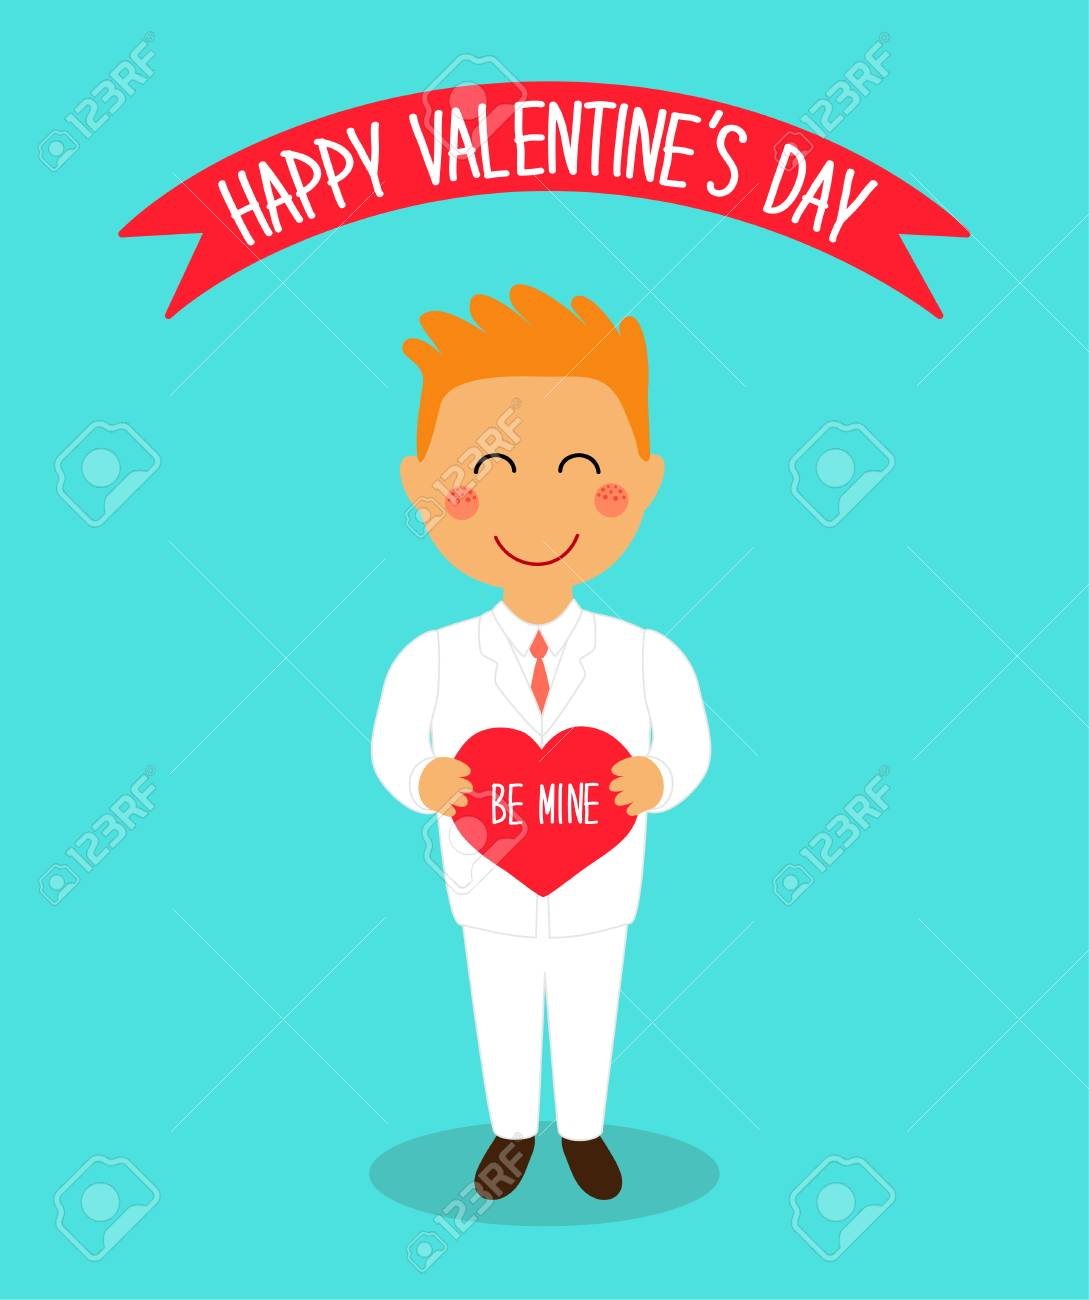 Cute Valentine S Day Card With Funny Cartoon Characters Of Loving